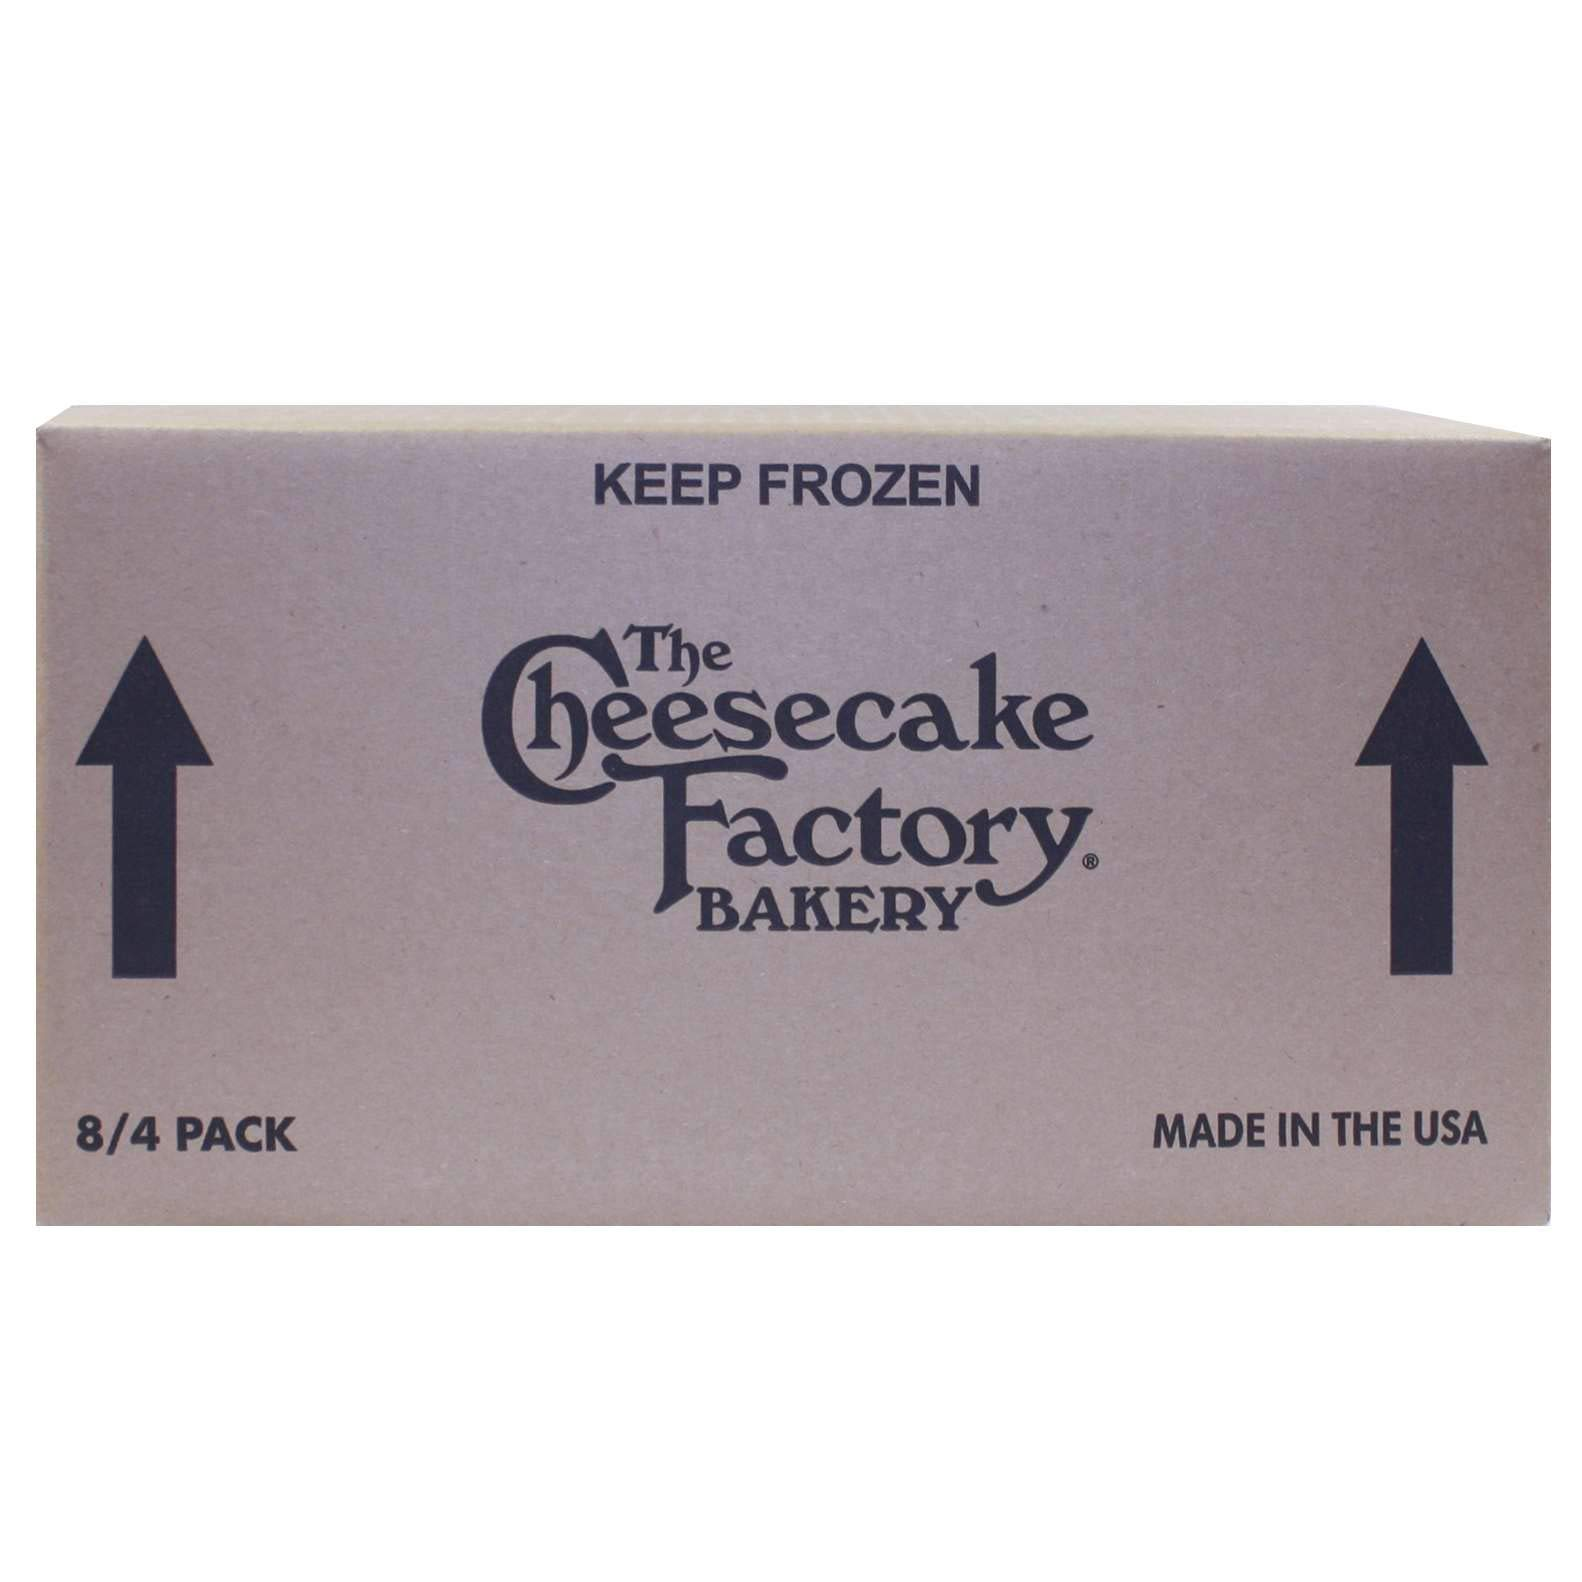 The Cheesecake Factory Red Velvet Cupcakes 4 Count (Pack of 8) by The Cheesecake Factory